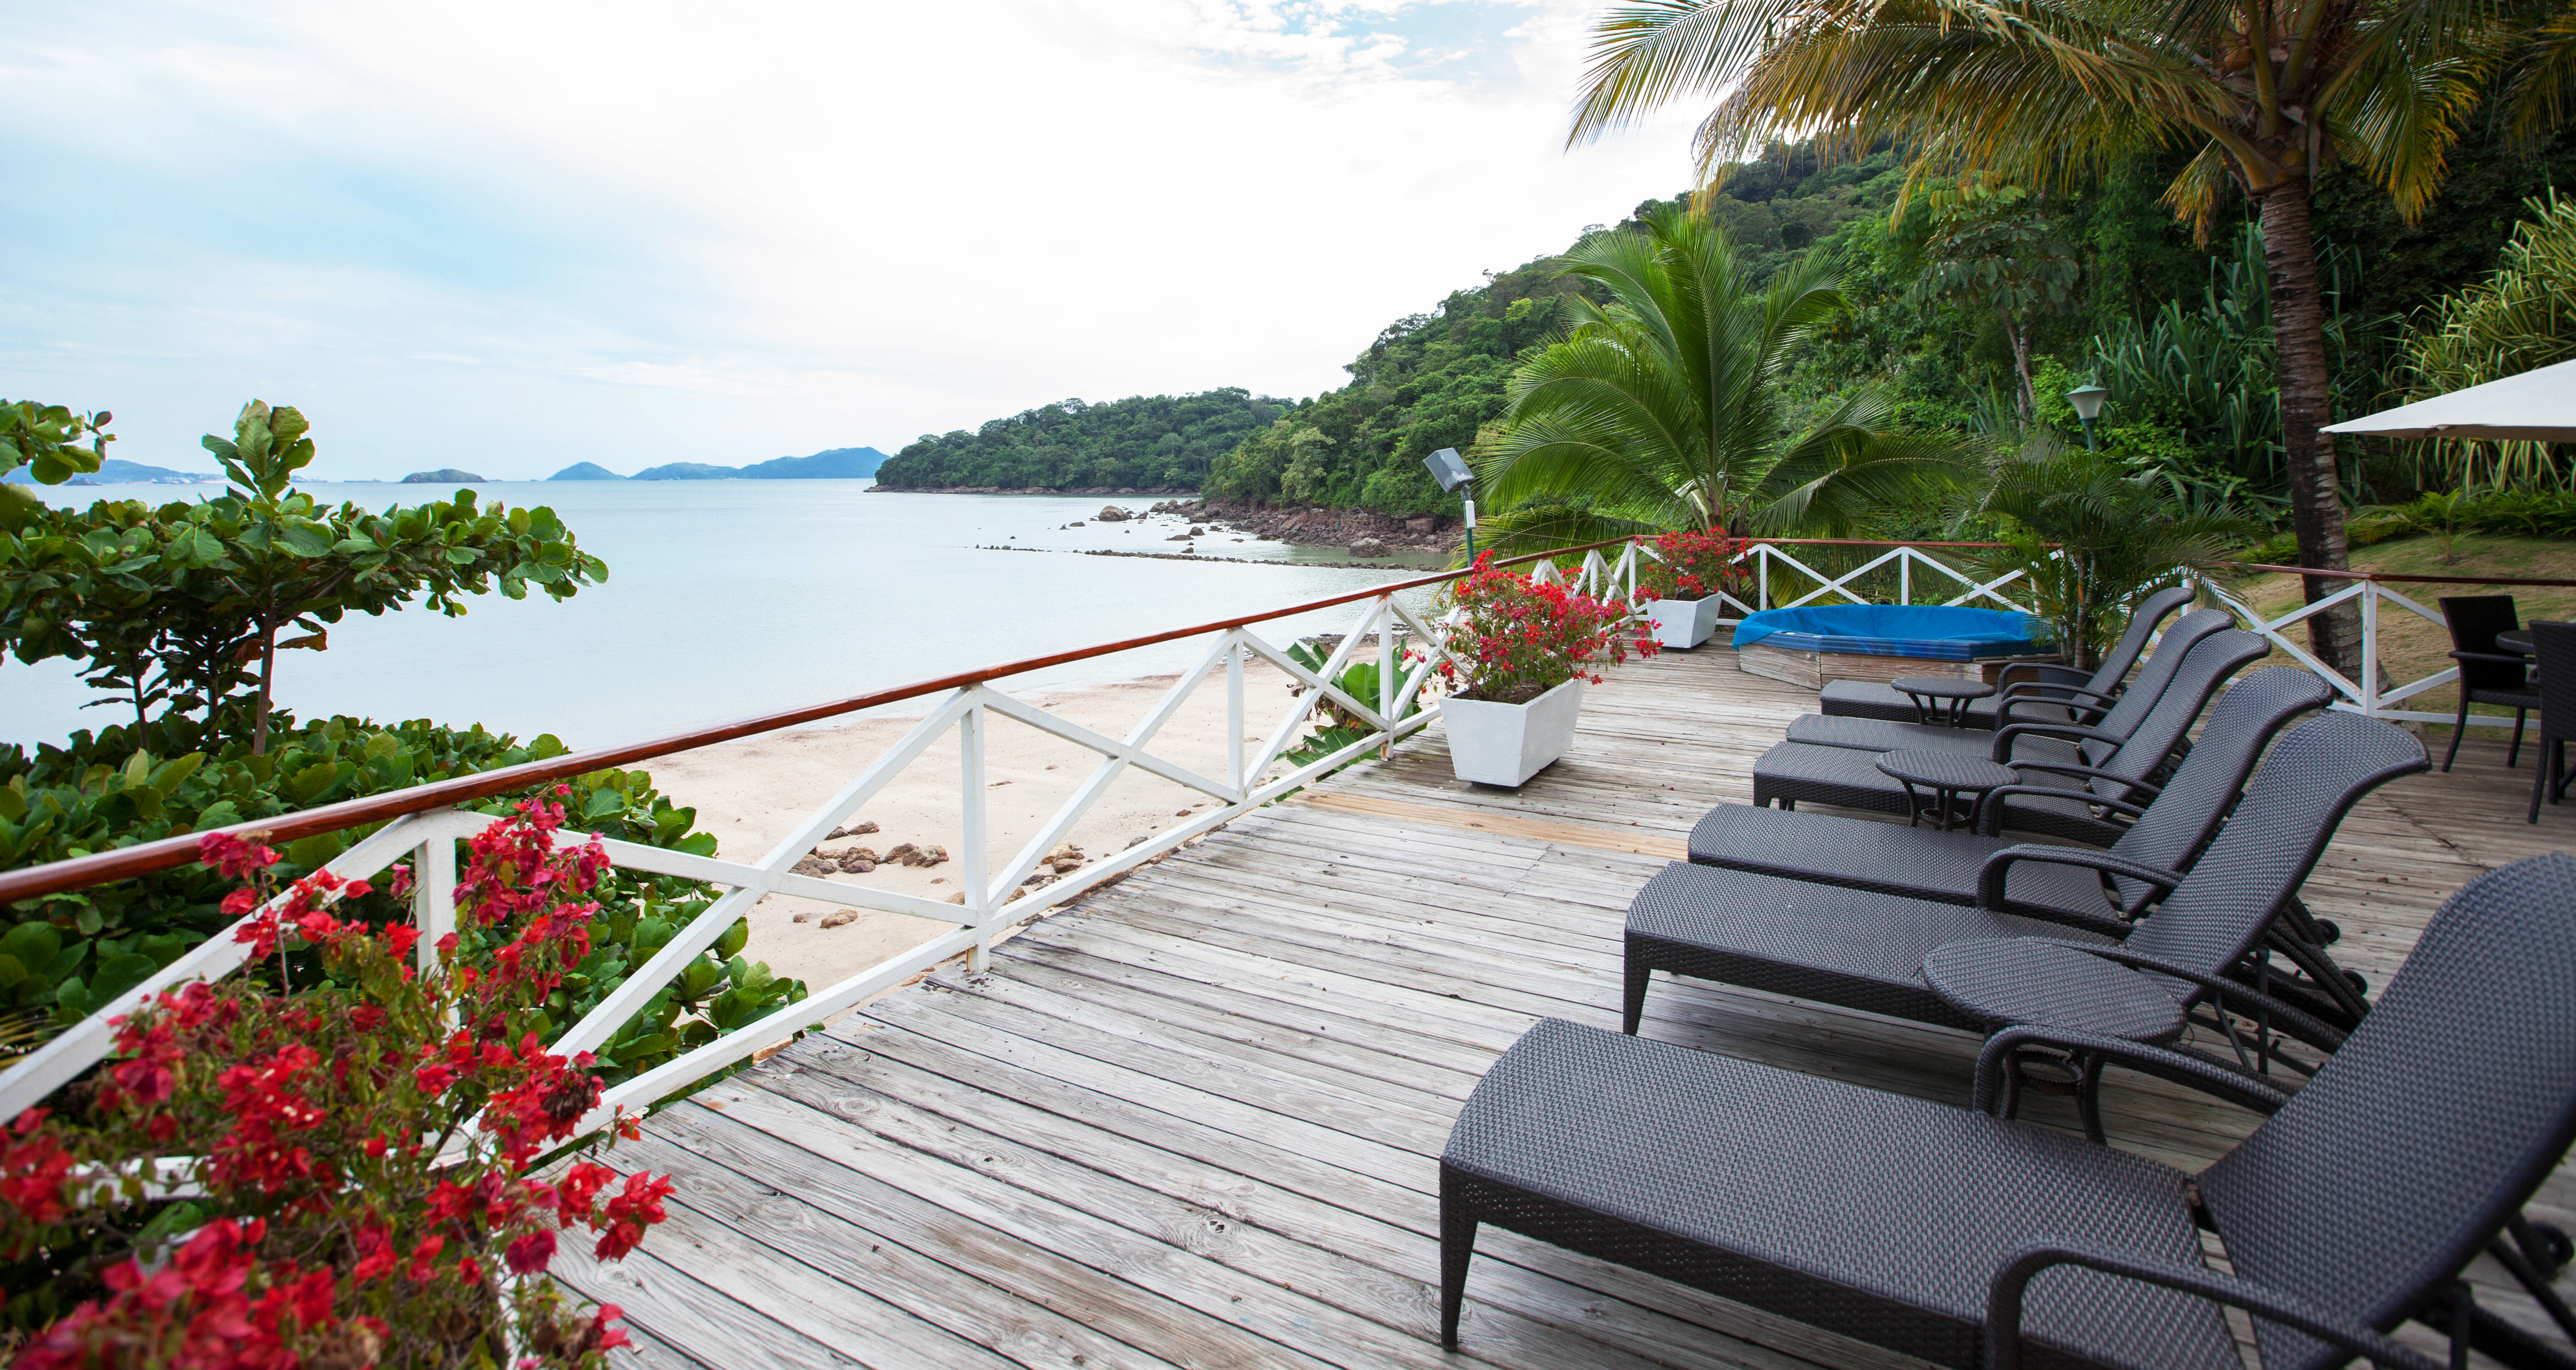 Beachfront Classic Deck Family Resort tree sky leisure walkway wooden swimming pool porch cottage Villa overlooking Garden